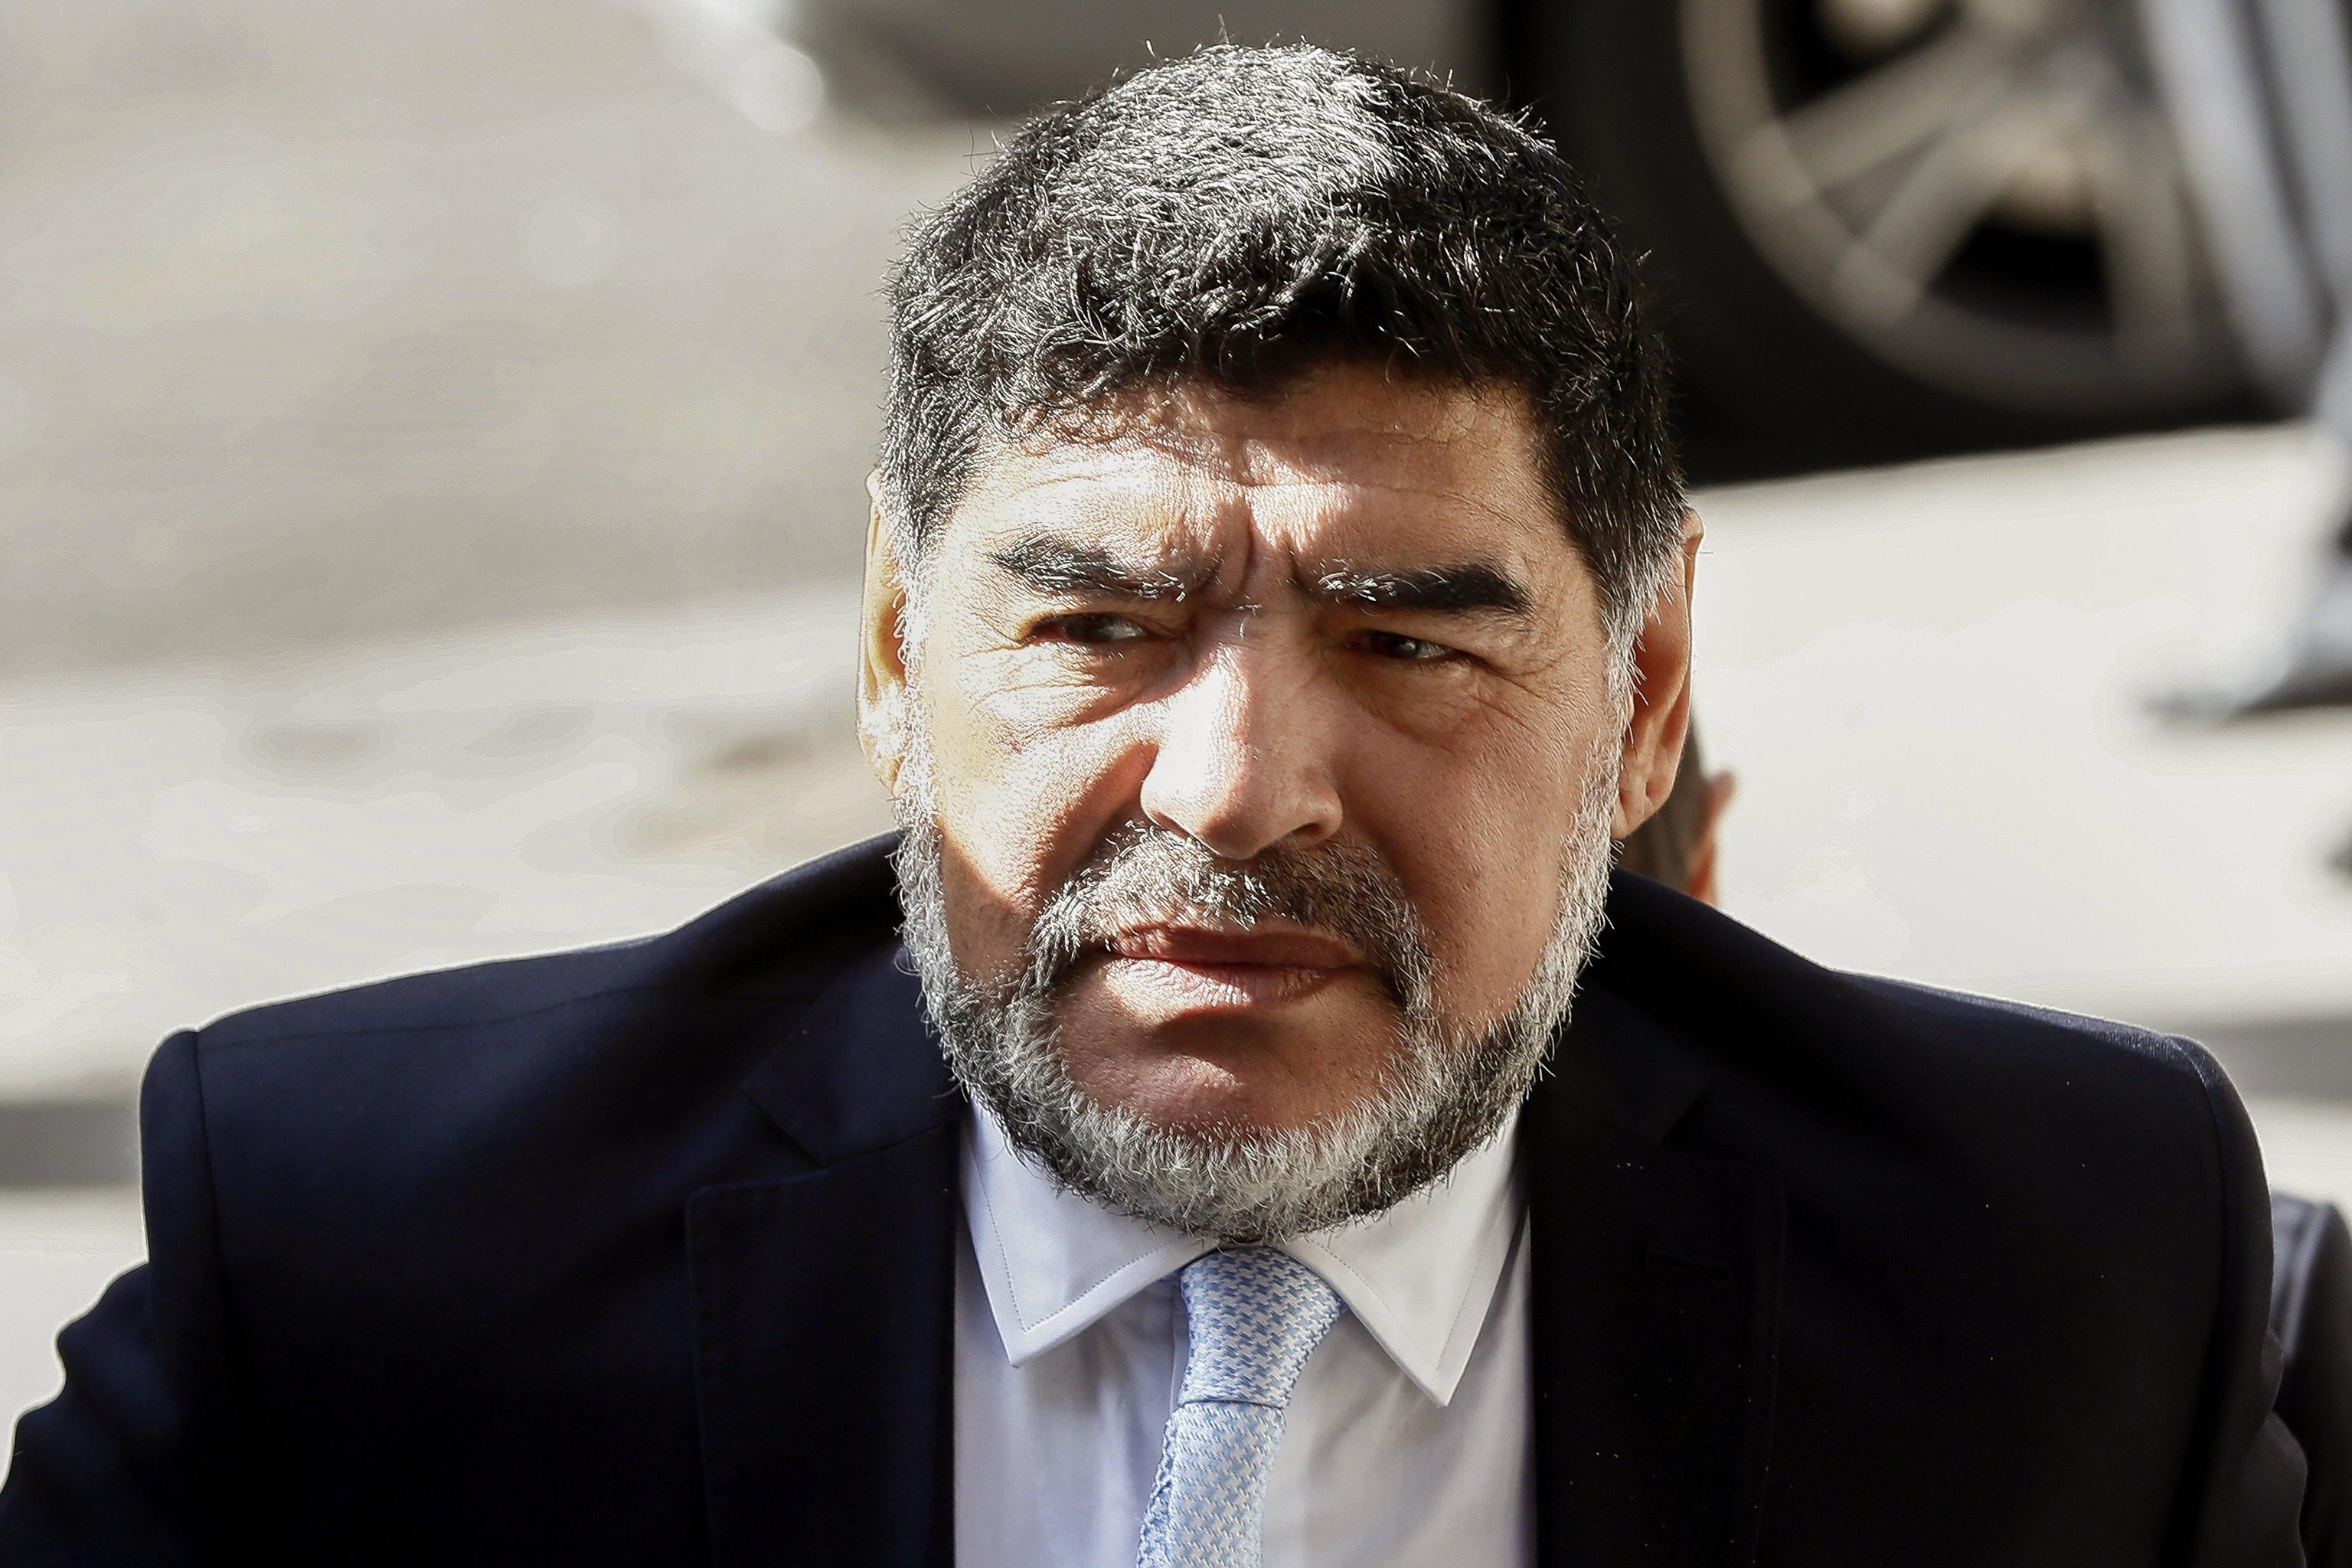 Maradona questioned by police over alleged row with his girlfriend in Madrid